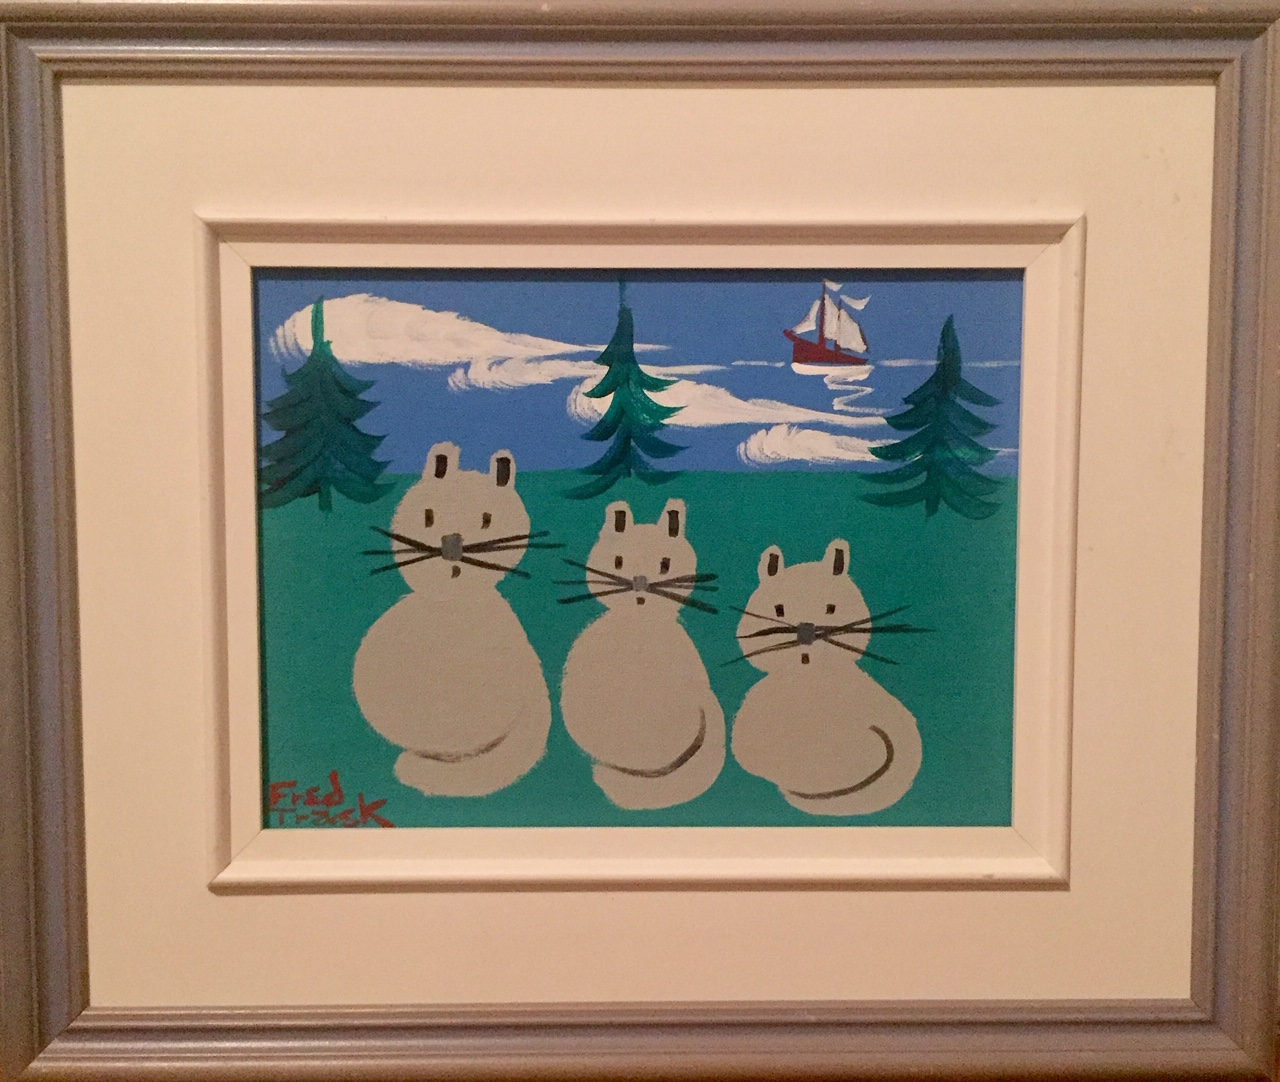 """FRED TRASK(CANADIAN B. 1946) '3 CATS DIGBY' - Acrylic on canvas board9"""" x 12""""Frame size 16.5"""" x 19.5""""Fred Trask is one of Nova Scotia's most prominent folk artists and was Maud Lewis' neighbour.$795.00SOLD"""